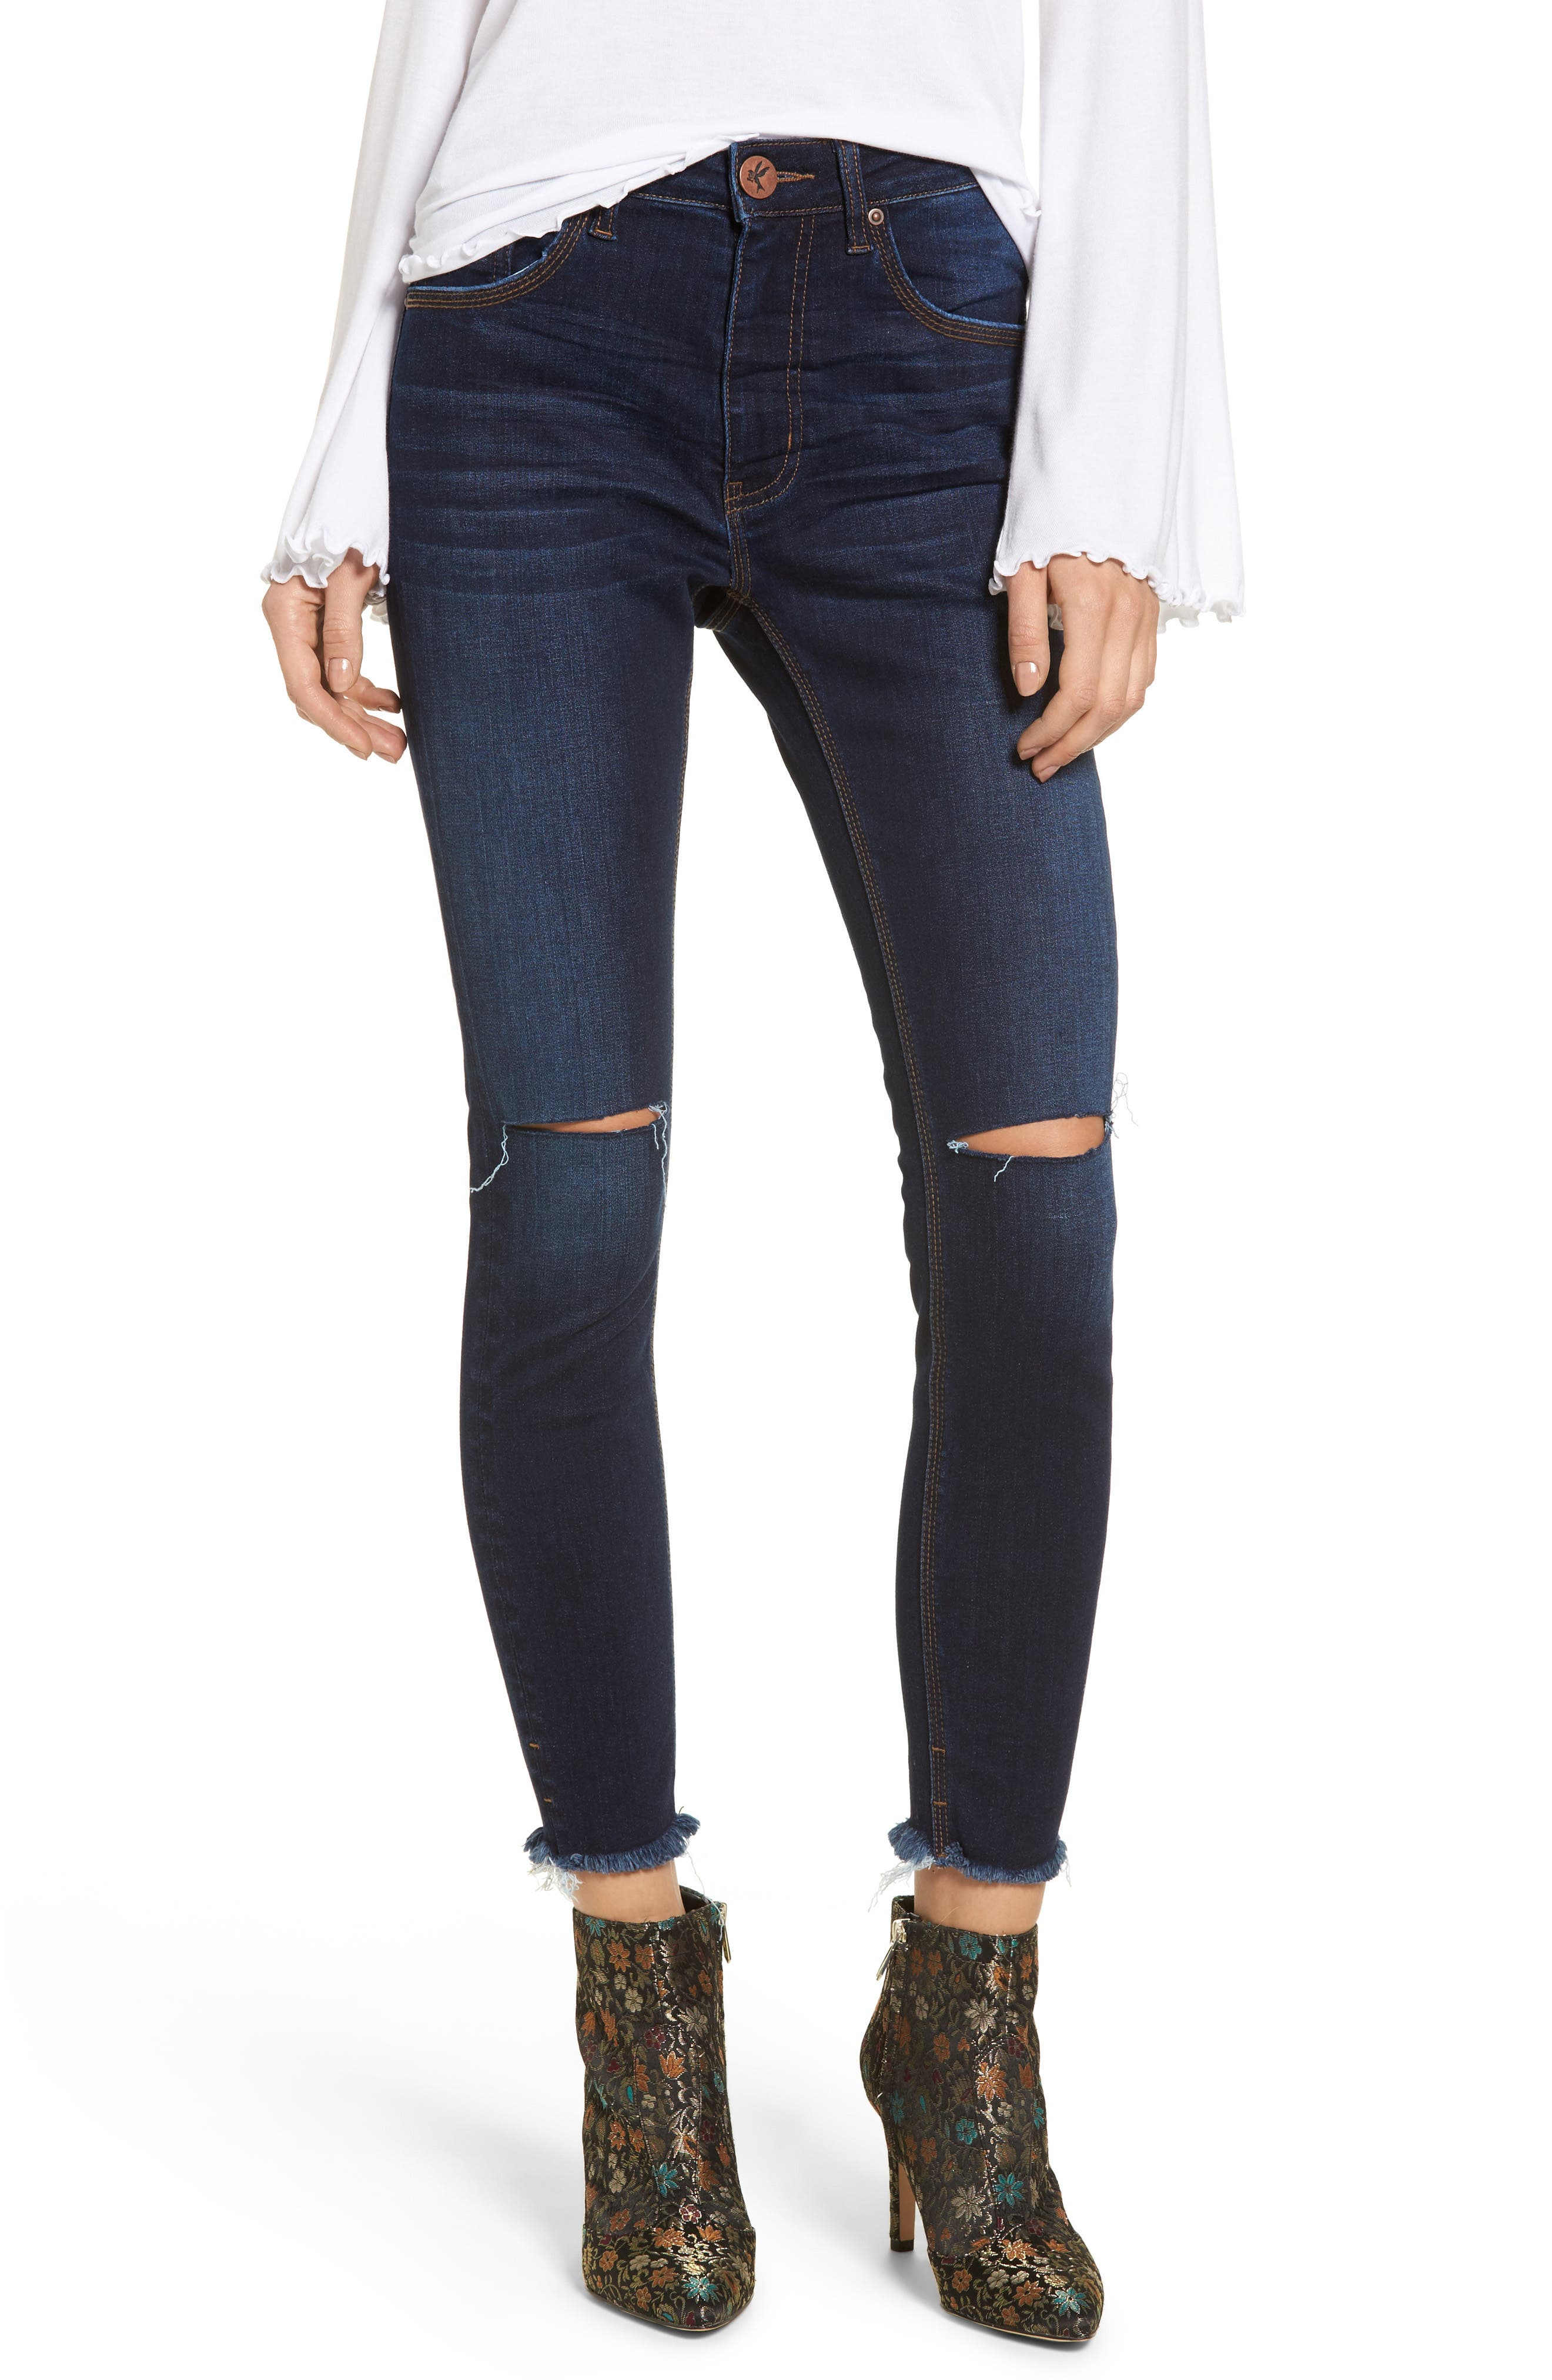 One Teaspoon Freebirds Ripped High Waist Skinny Jeans